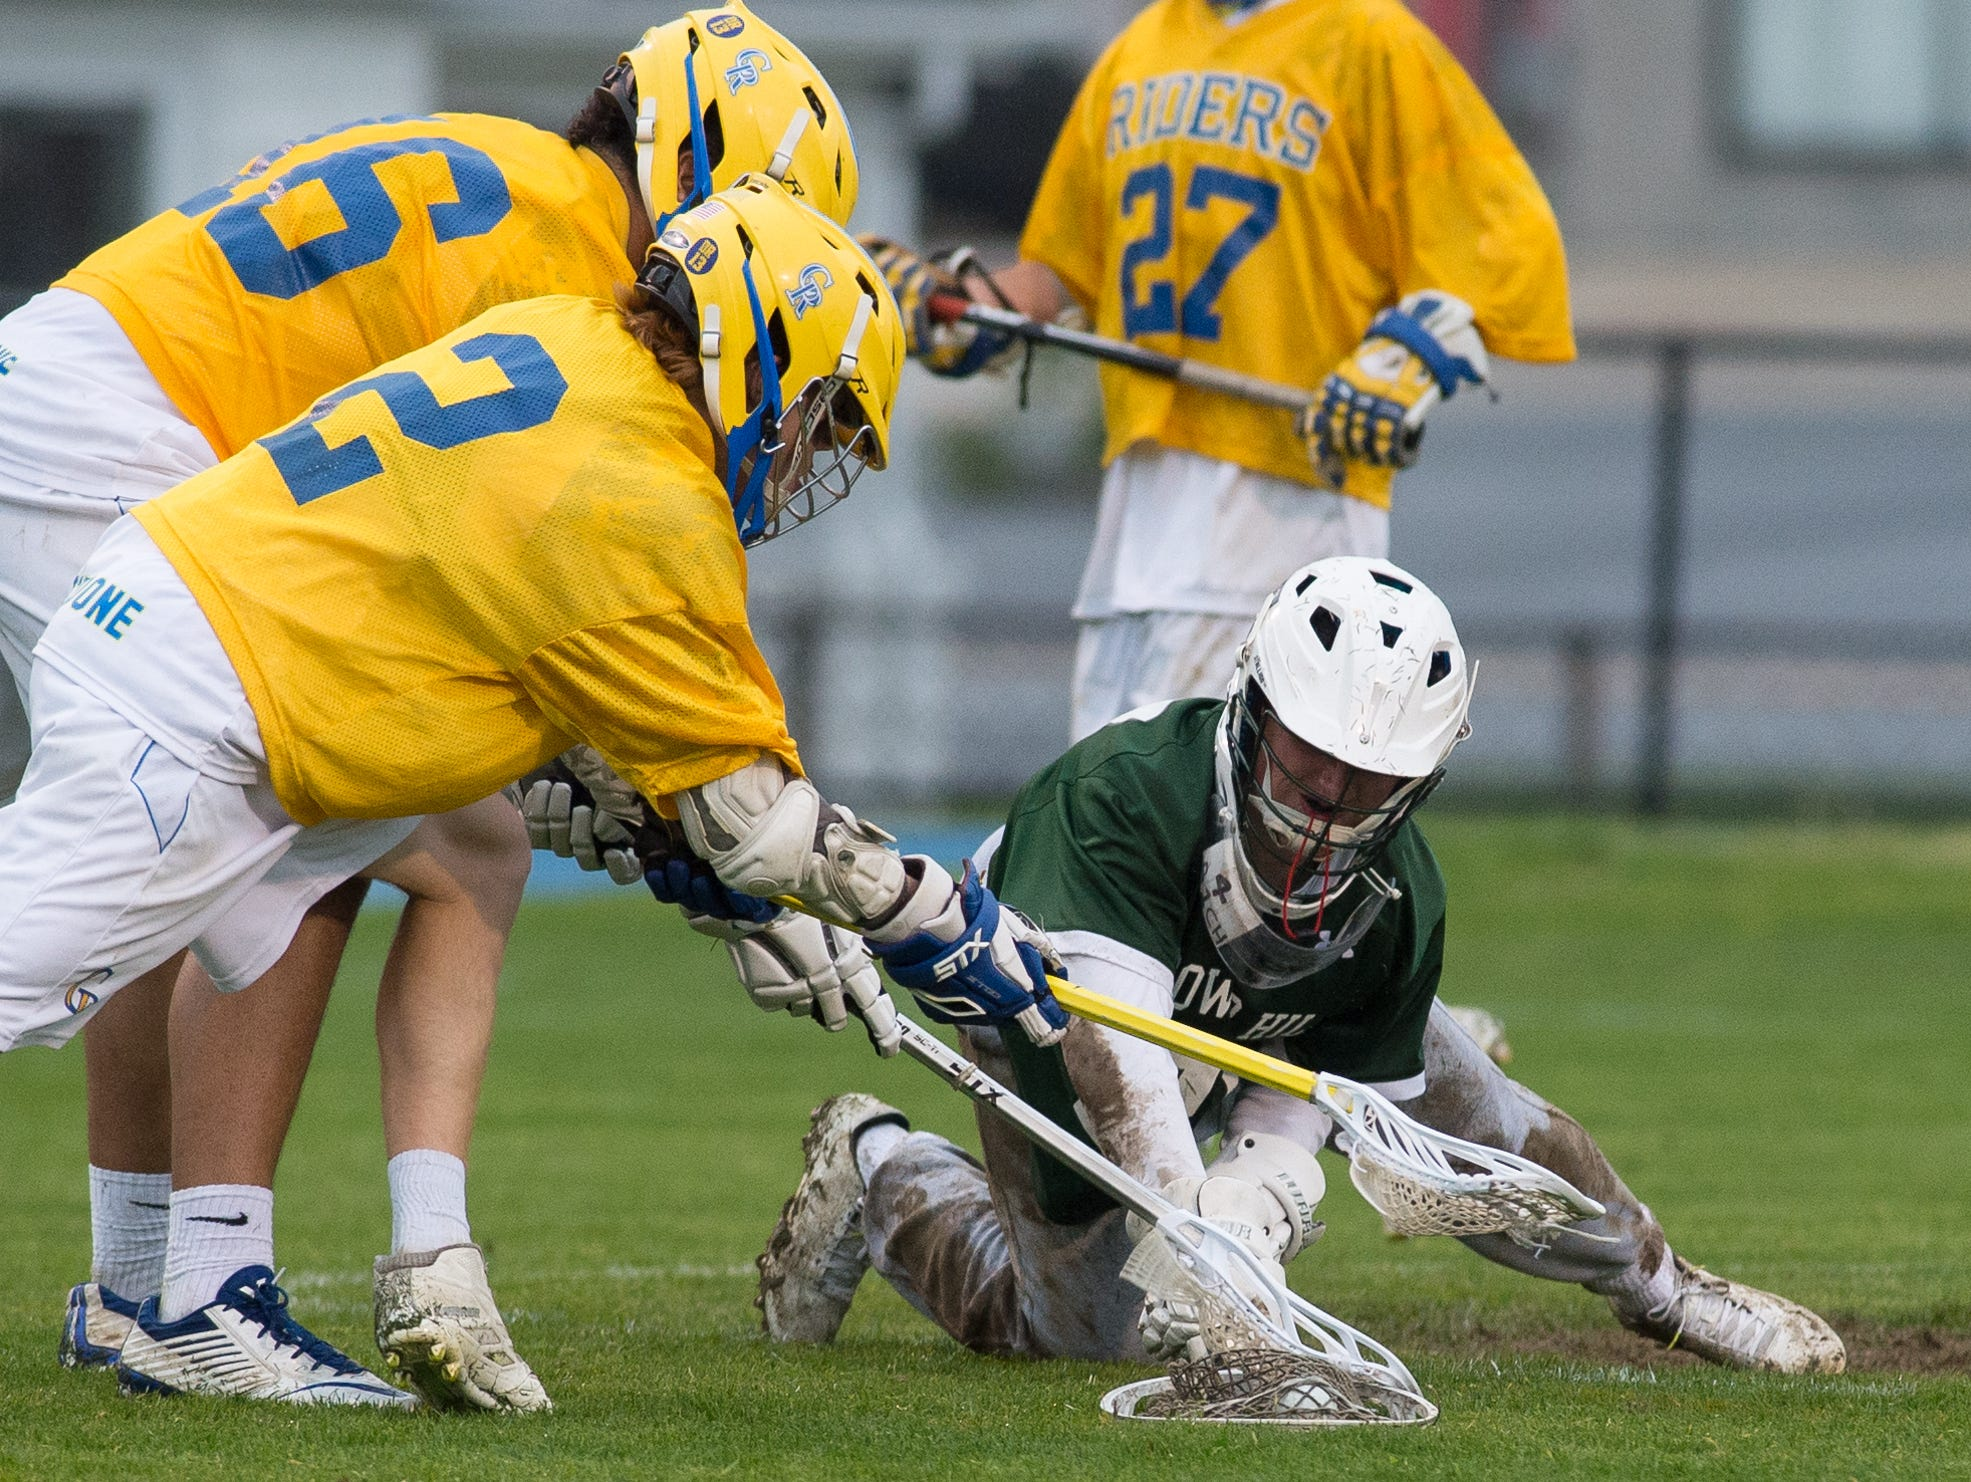 Tower Hill's goalie Michael Gianforcaro (27) dives on the ball covering it in their win over Caesar Rodney.